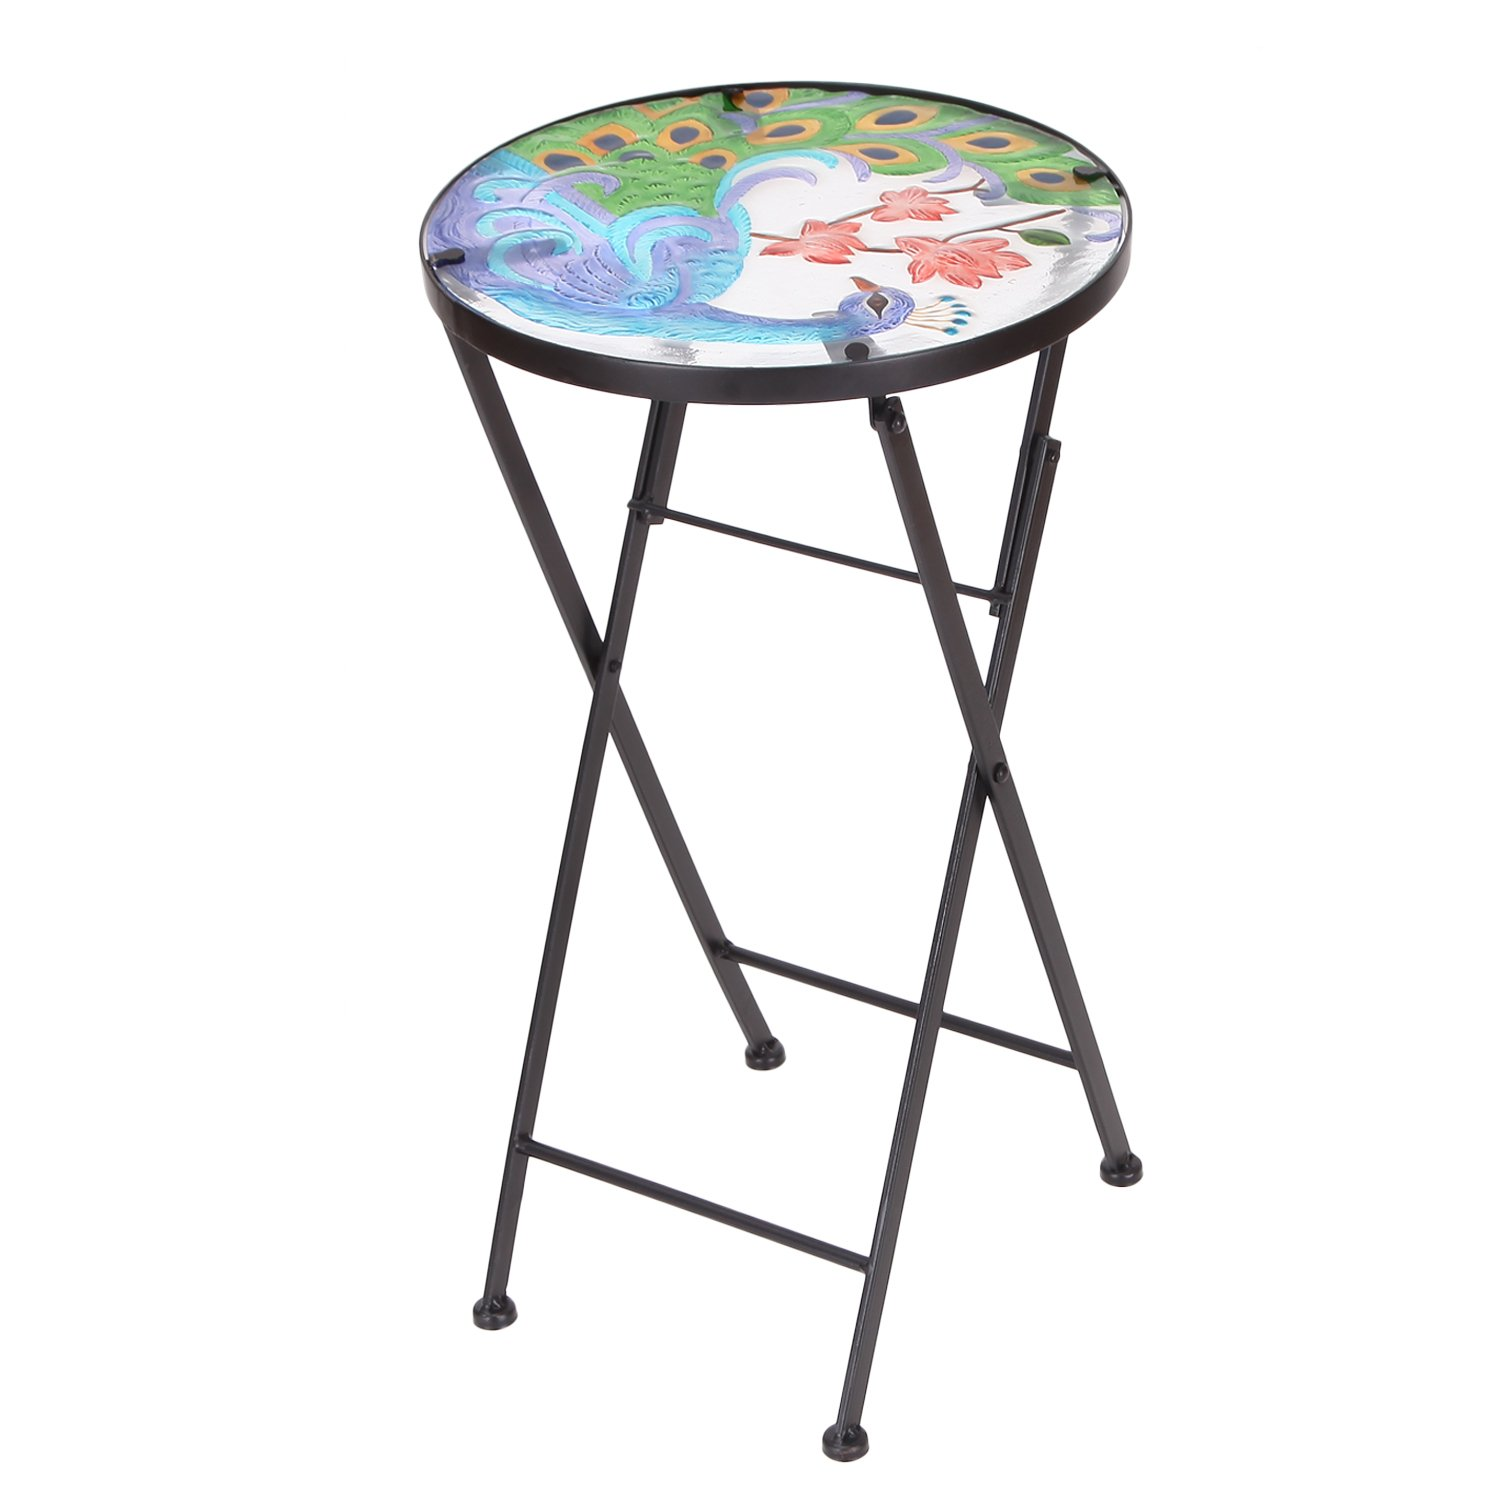 table top plant stand find bella green mosaic outdoor accent get quotations homebeez indoor foldable round side end folding for rattan patio furniture door threshold wide wood